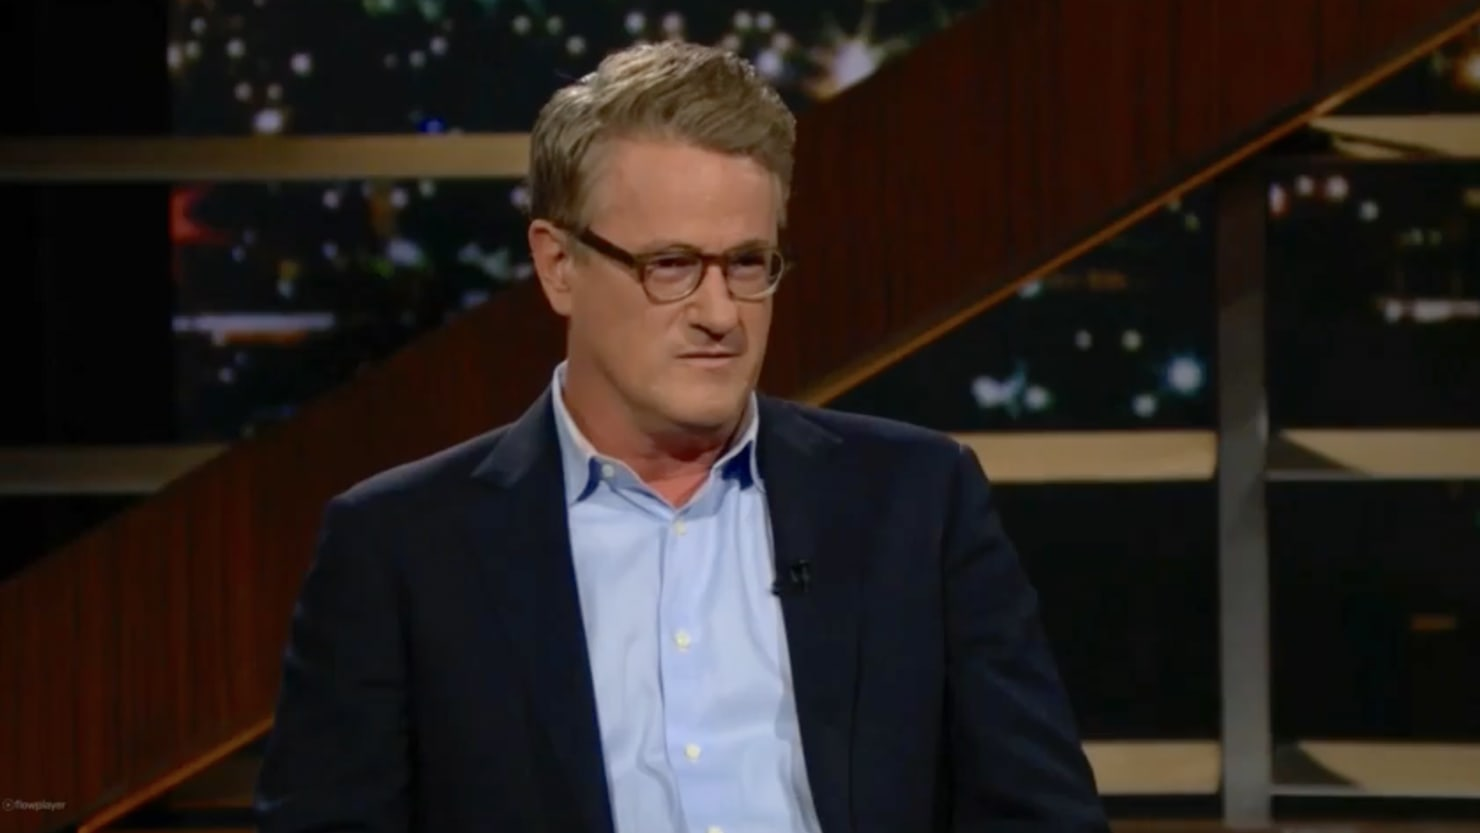 Joe Scarborough to Bill Maher: The Republican Party Is Dead